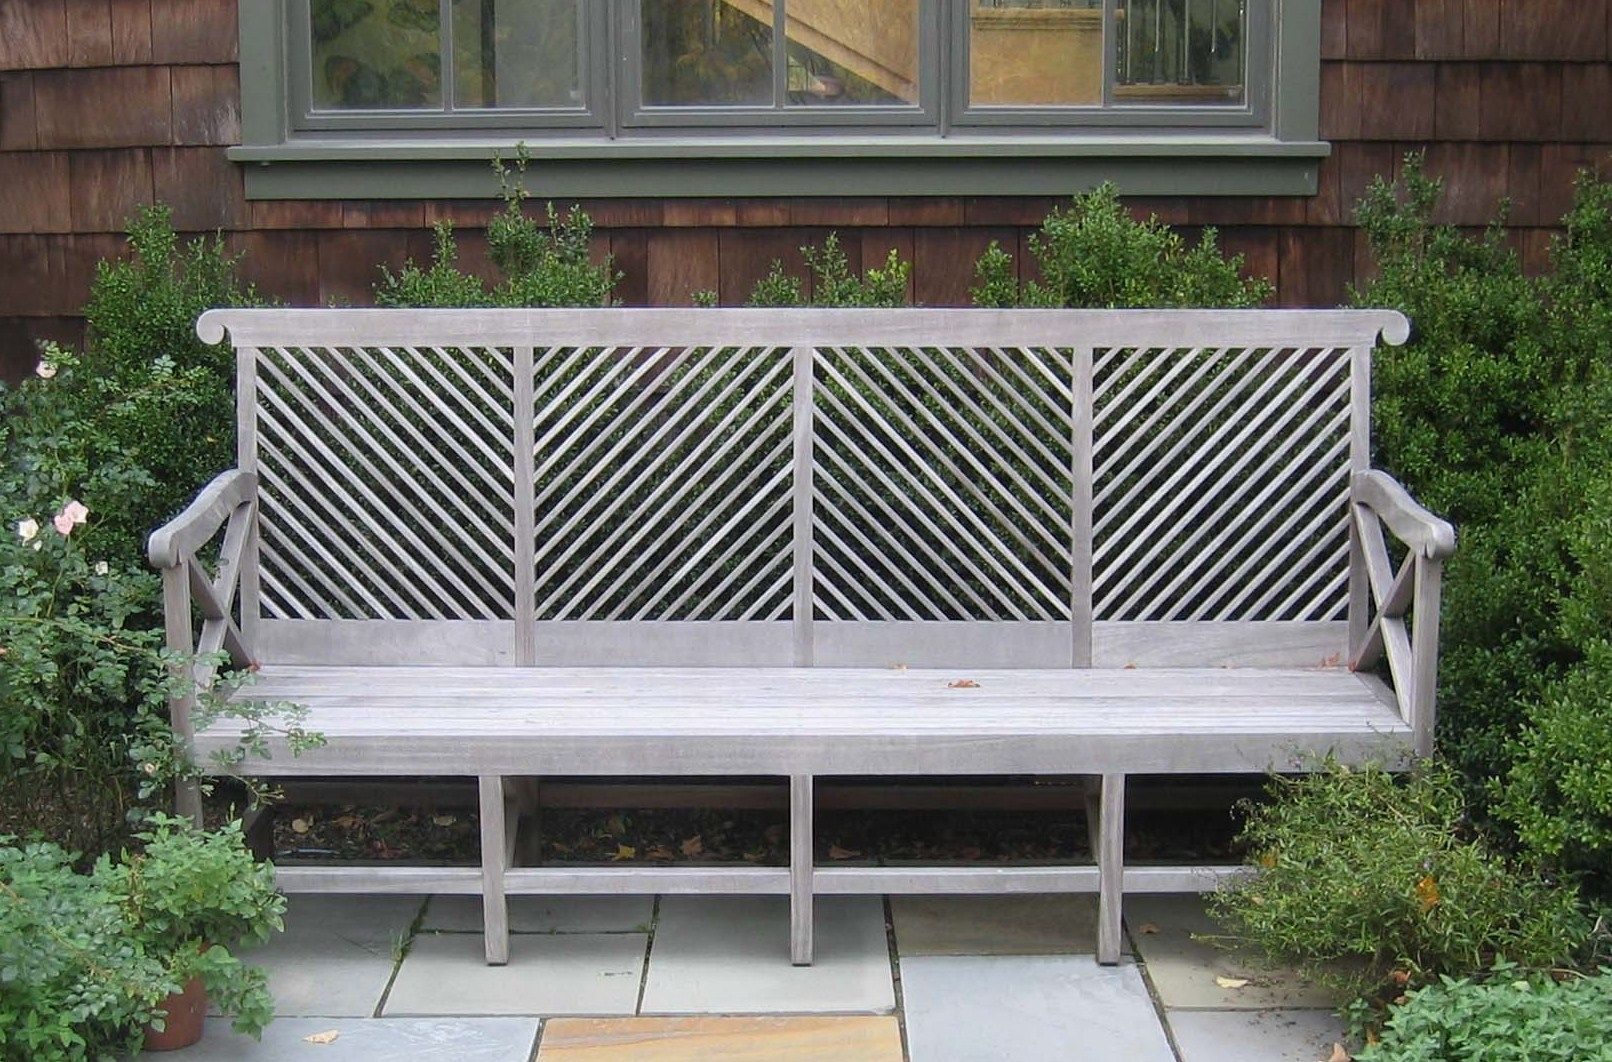 The Almodington bench by MUNDER SKILES Garden Furniture Company  based in  Garrison New York  is made of FSC certified chain of custody raw teak fro. Munder Skiles Bench   Exterior Furniture   Benches   Pinterest